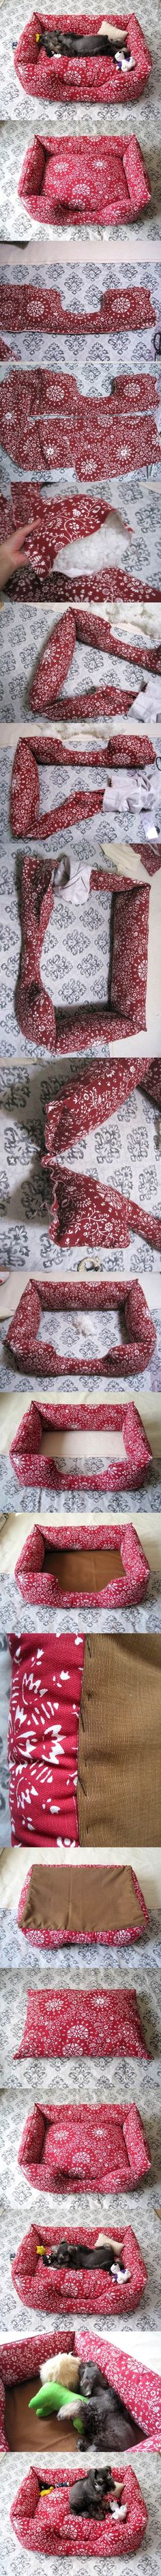 DIY Sew Couch for Pets 2